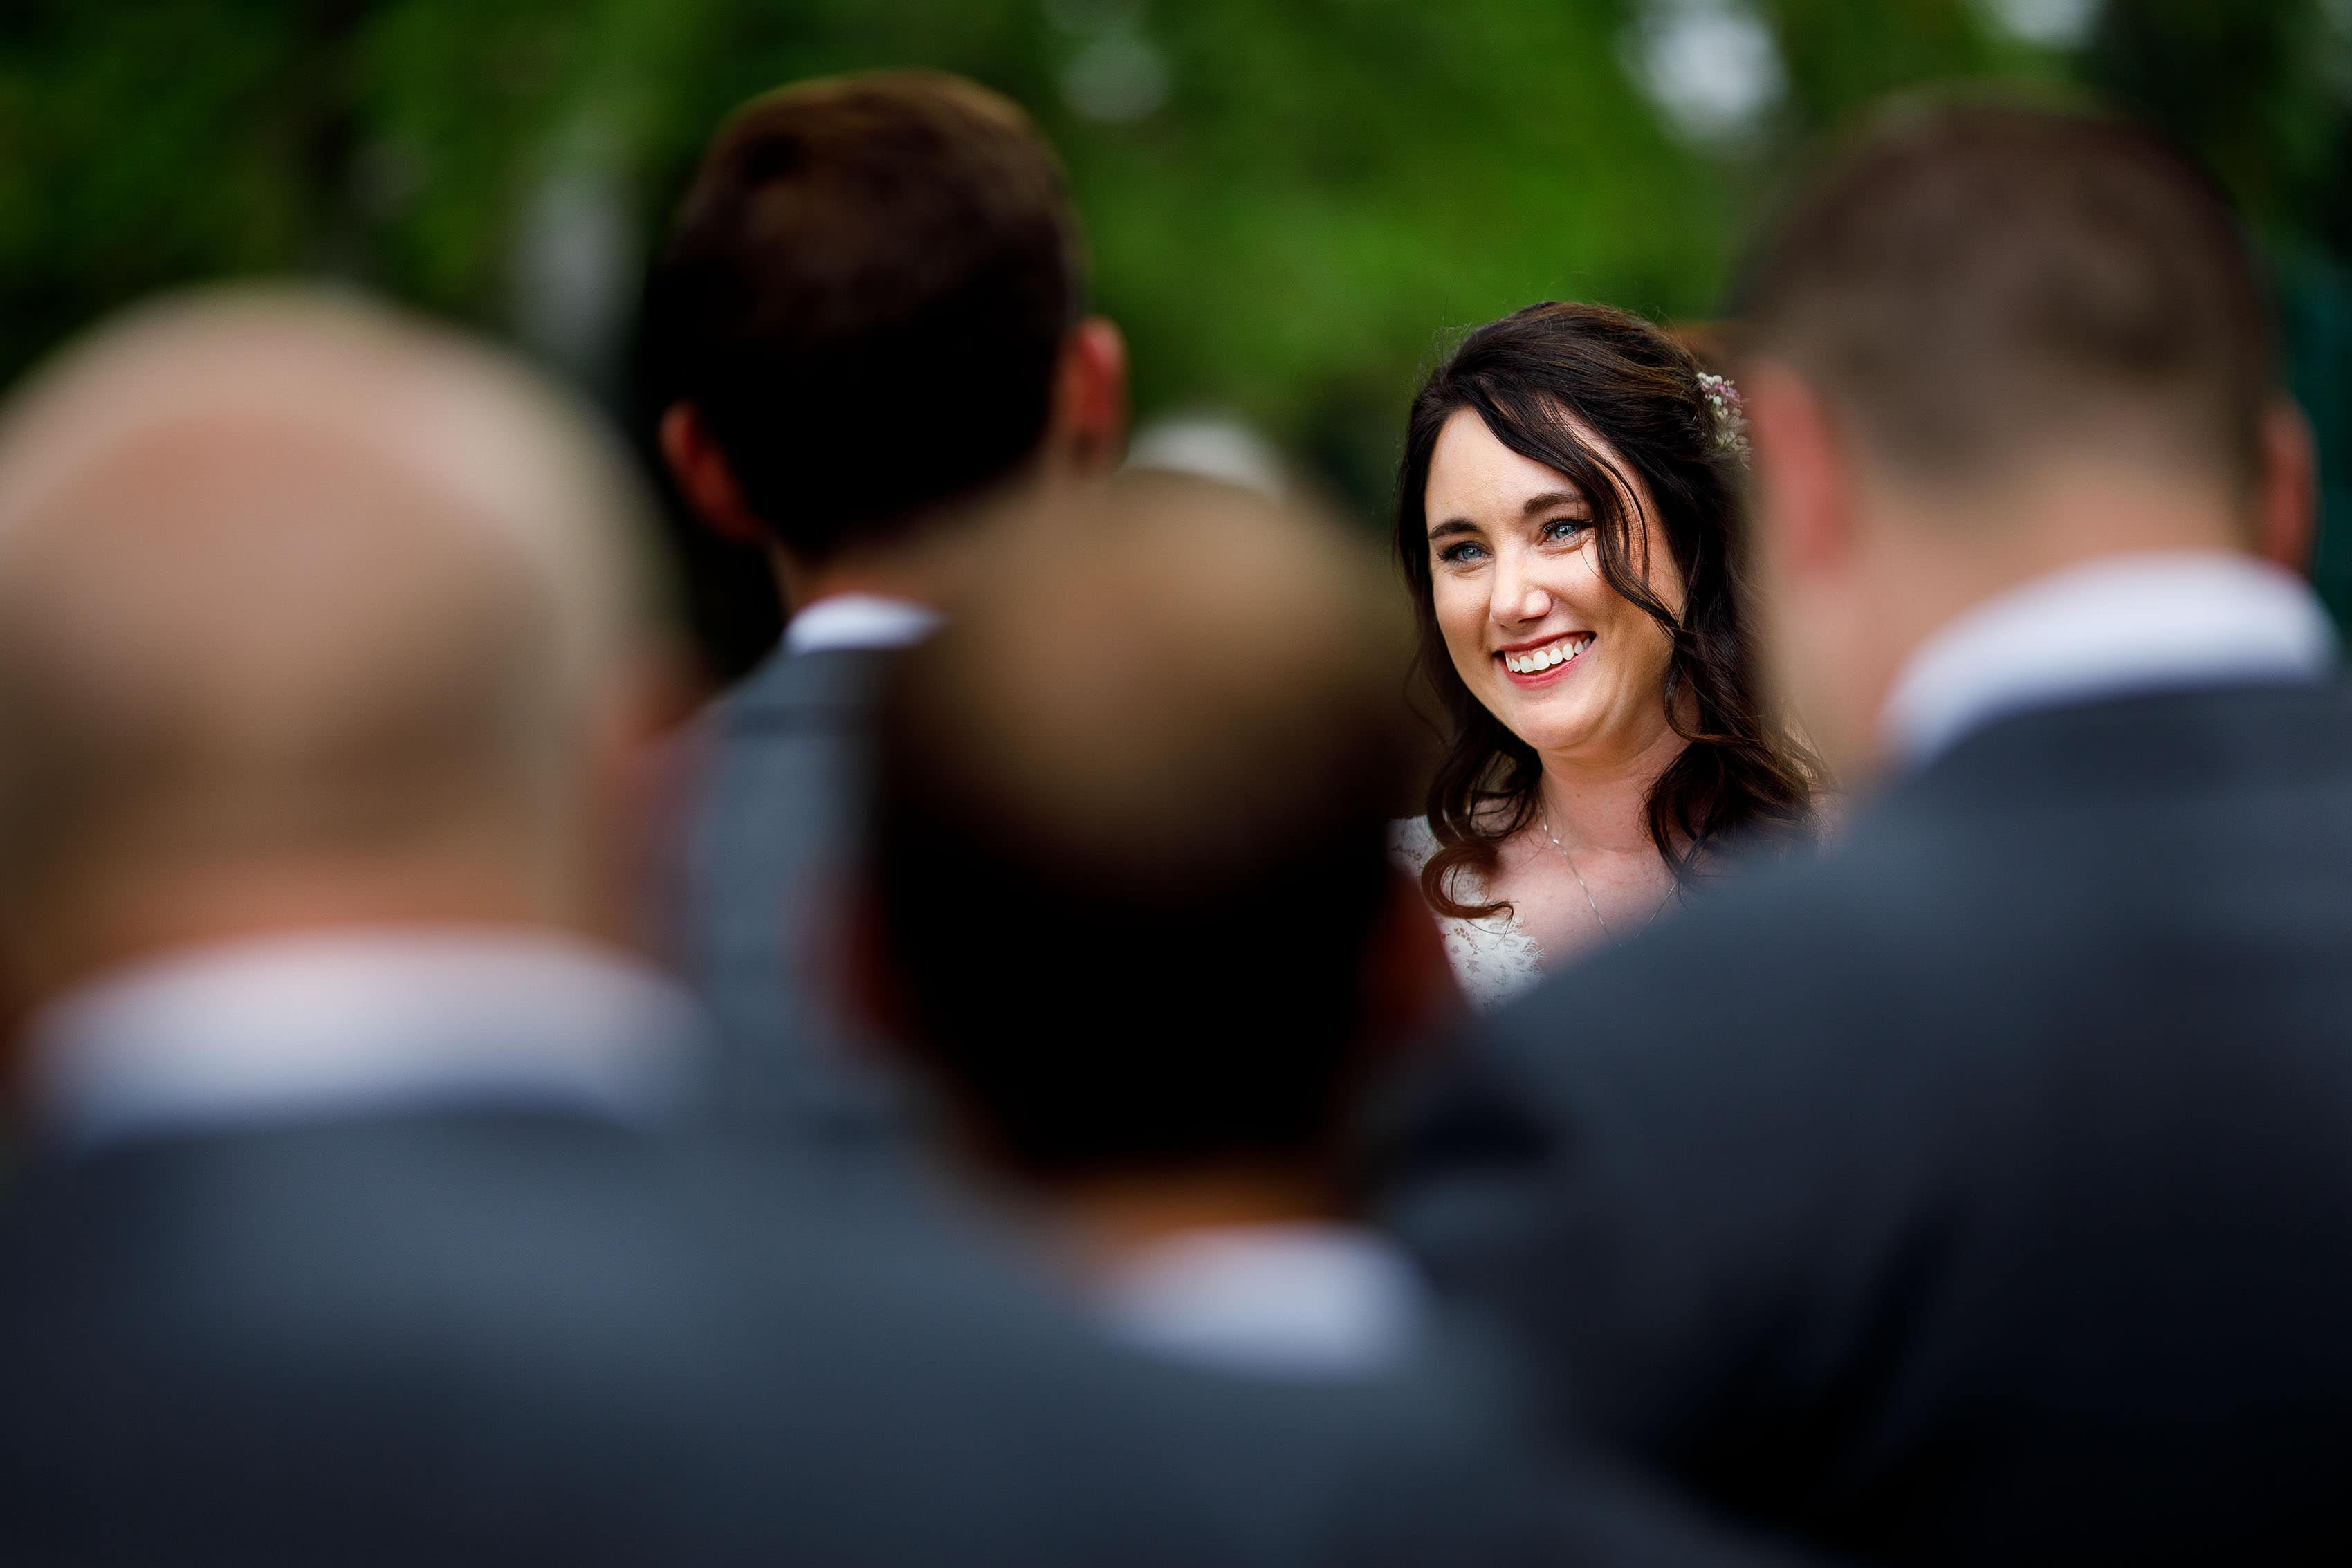 Bide smiles during the wedding ceremony